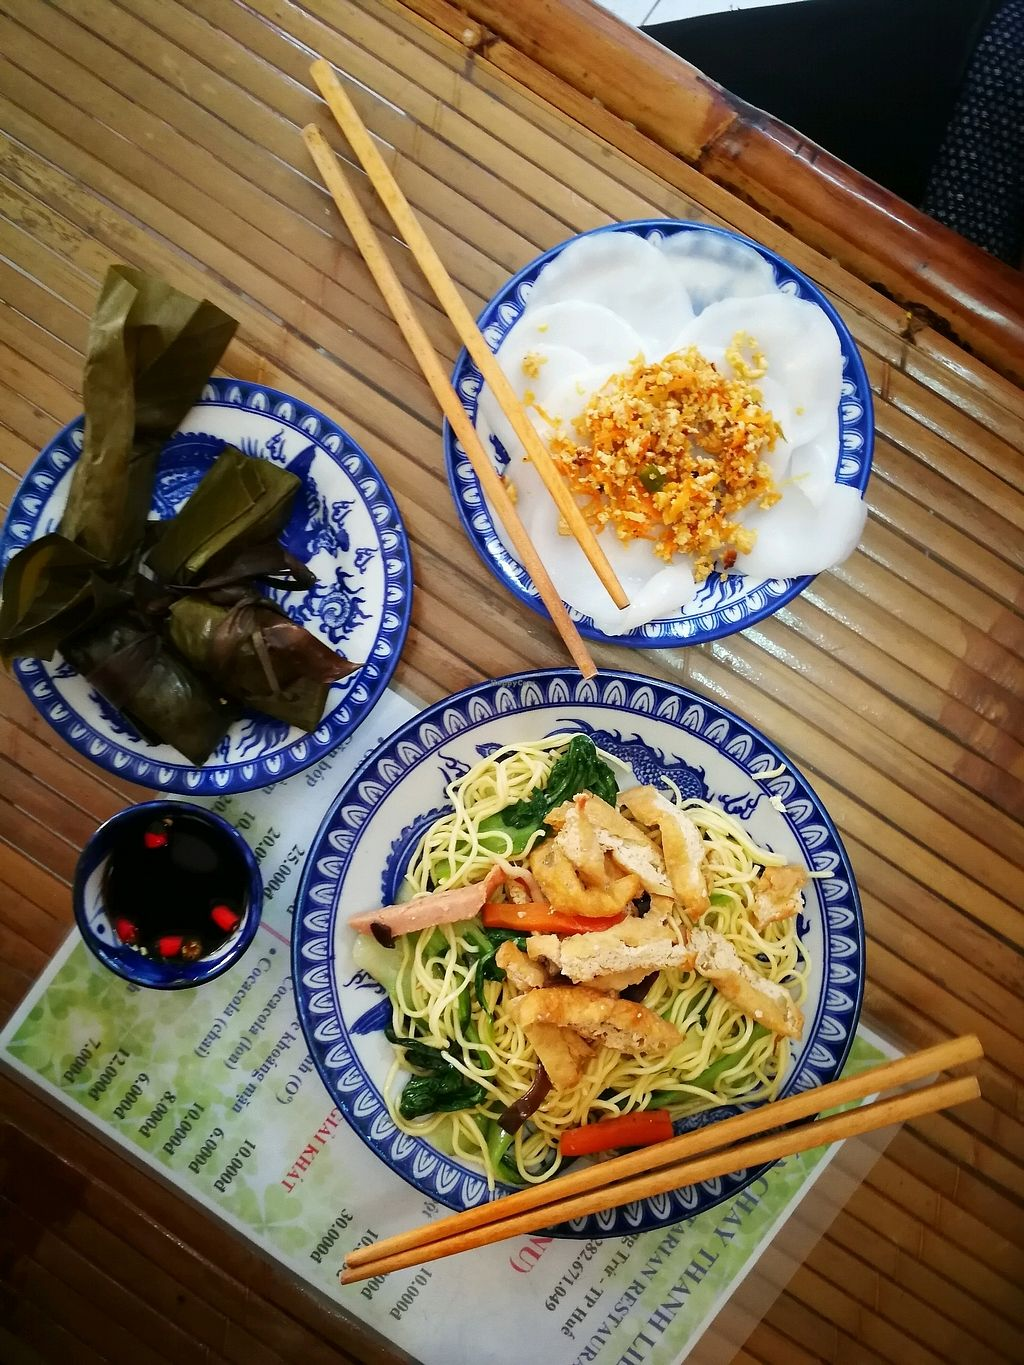 """Photo of Thanh Lieu  by <a href=""""/members/profile/Yoanne"""">Yoanne</a> <br/>mi xao (fried noodles) with some of the banh """"cakes"""" <br/> April 1, 2018  - <a href='/contact/abuse/image/28812/379197'>Report</a>"""